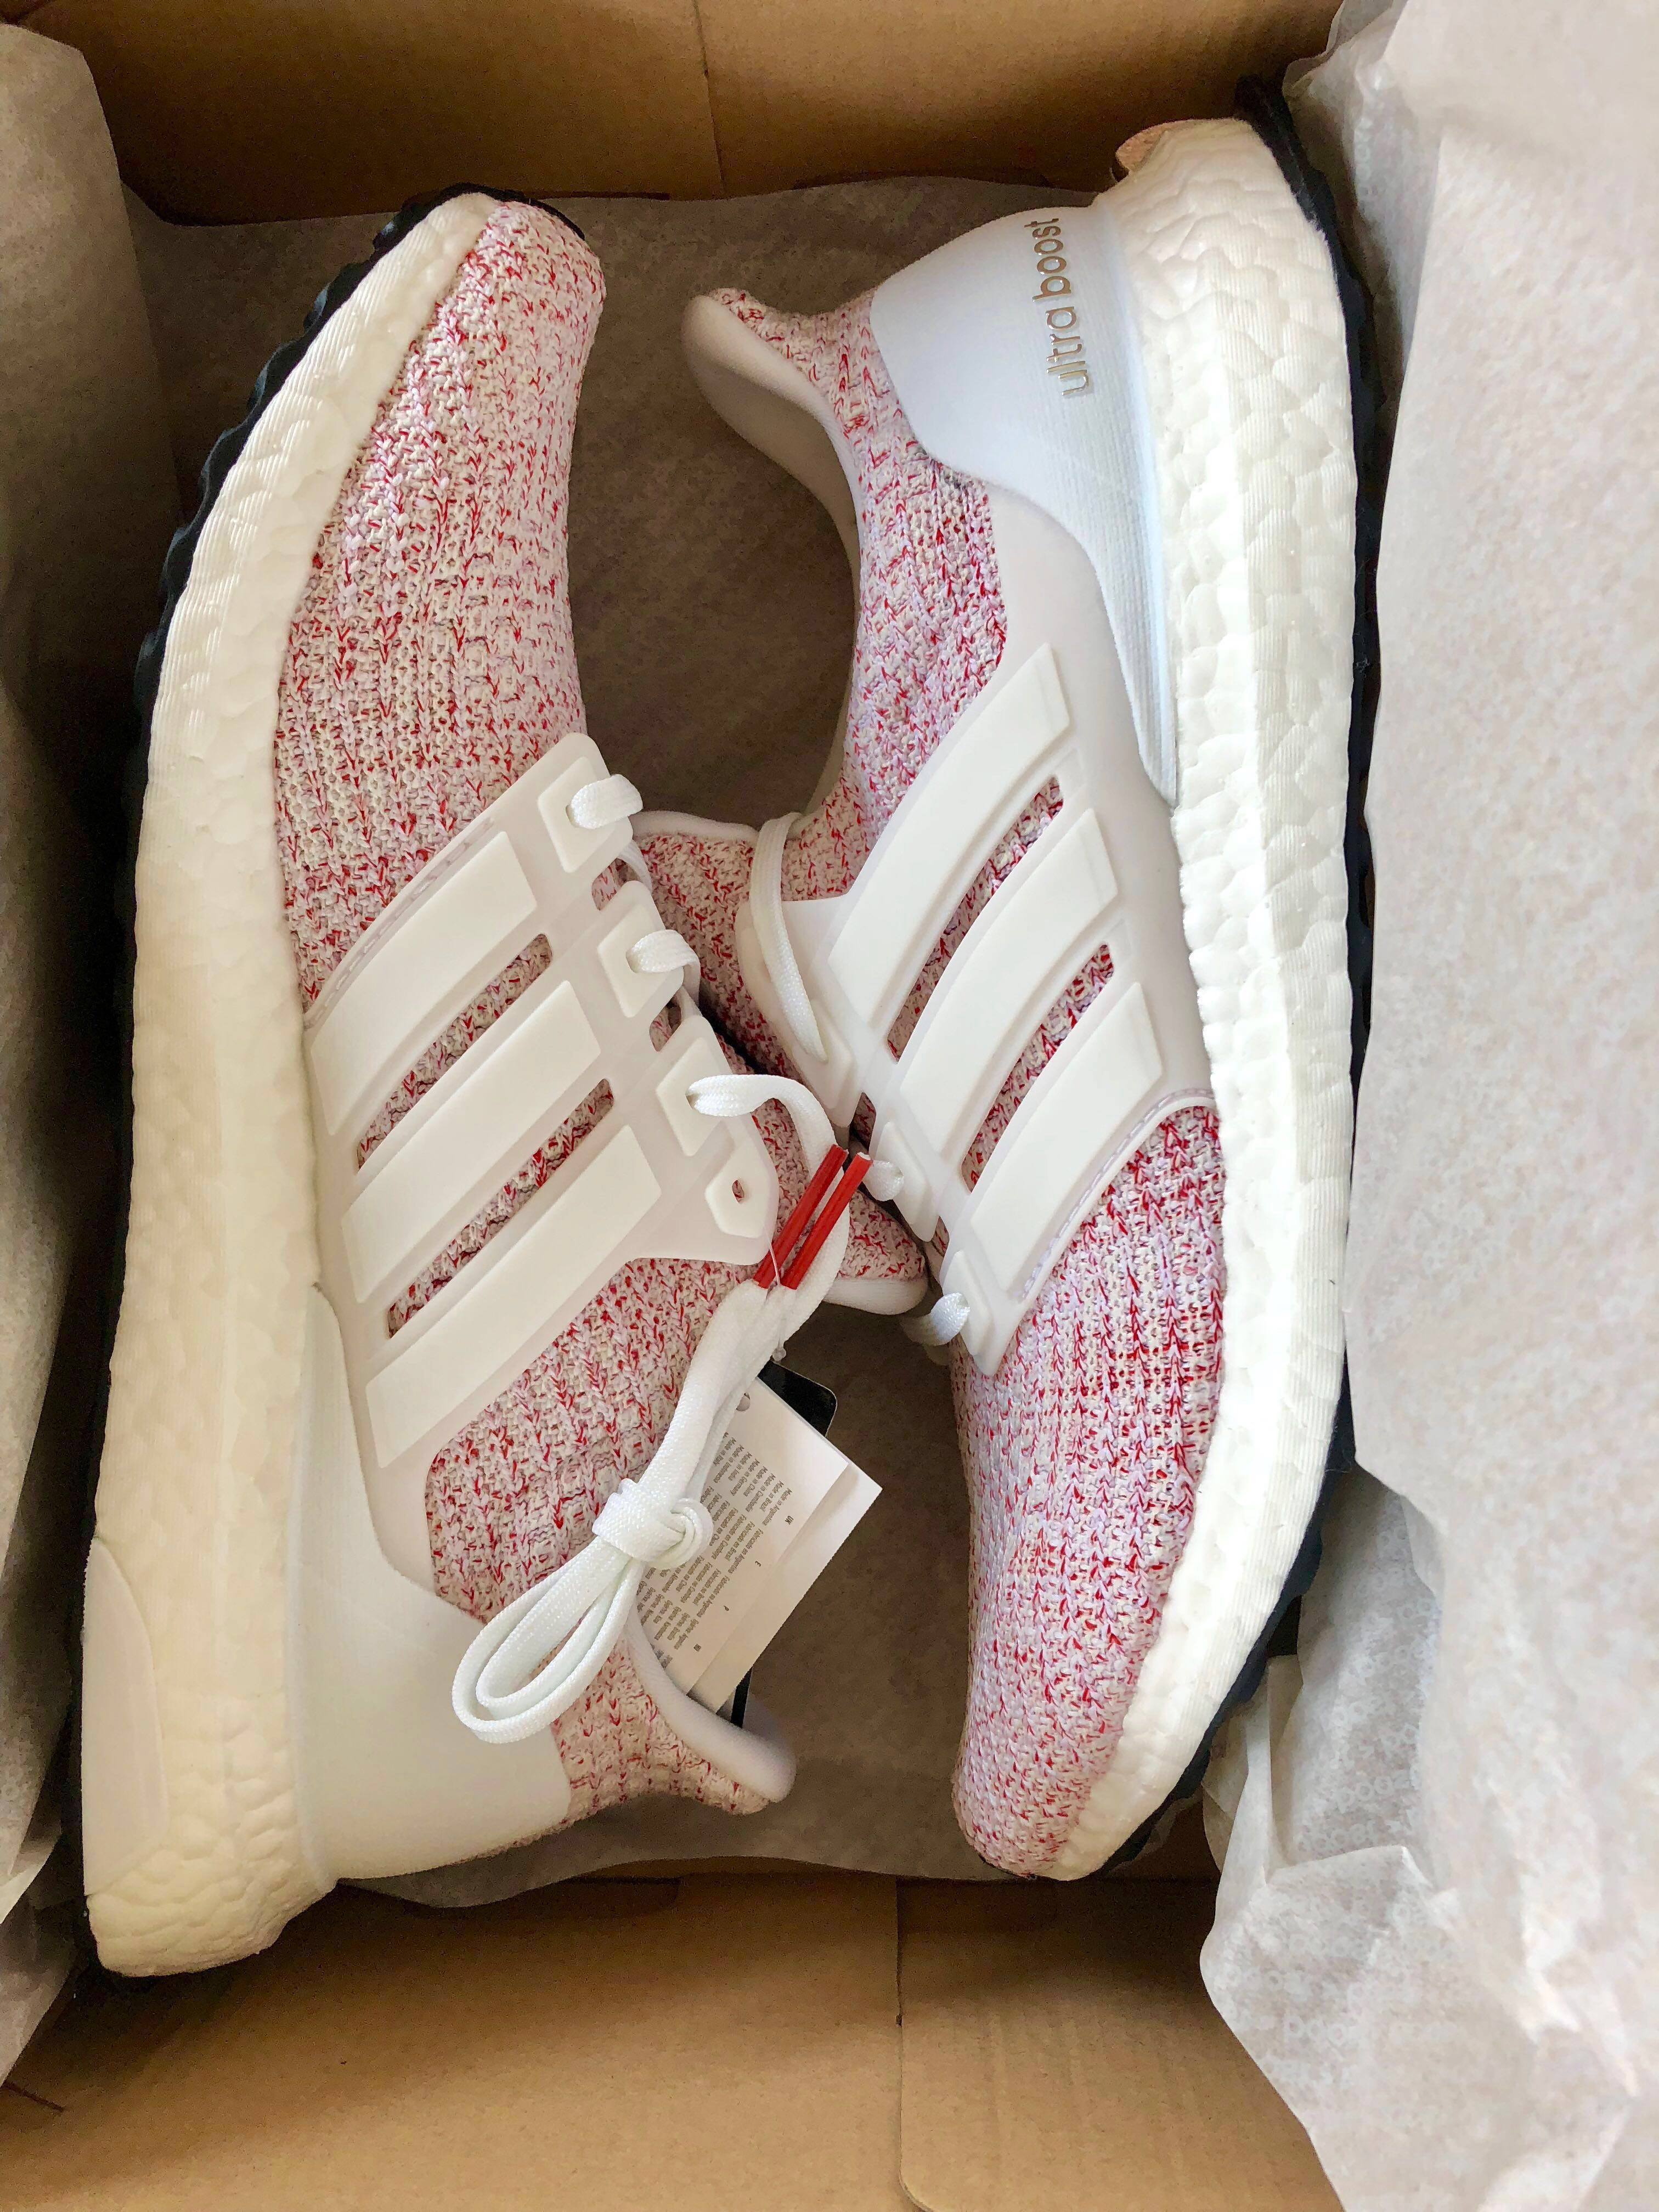 98f55a05277 Adidas Ultra Boost 4.0 Candy Cane Multi Color   Multi colour   Multicolor    Multicolour